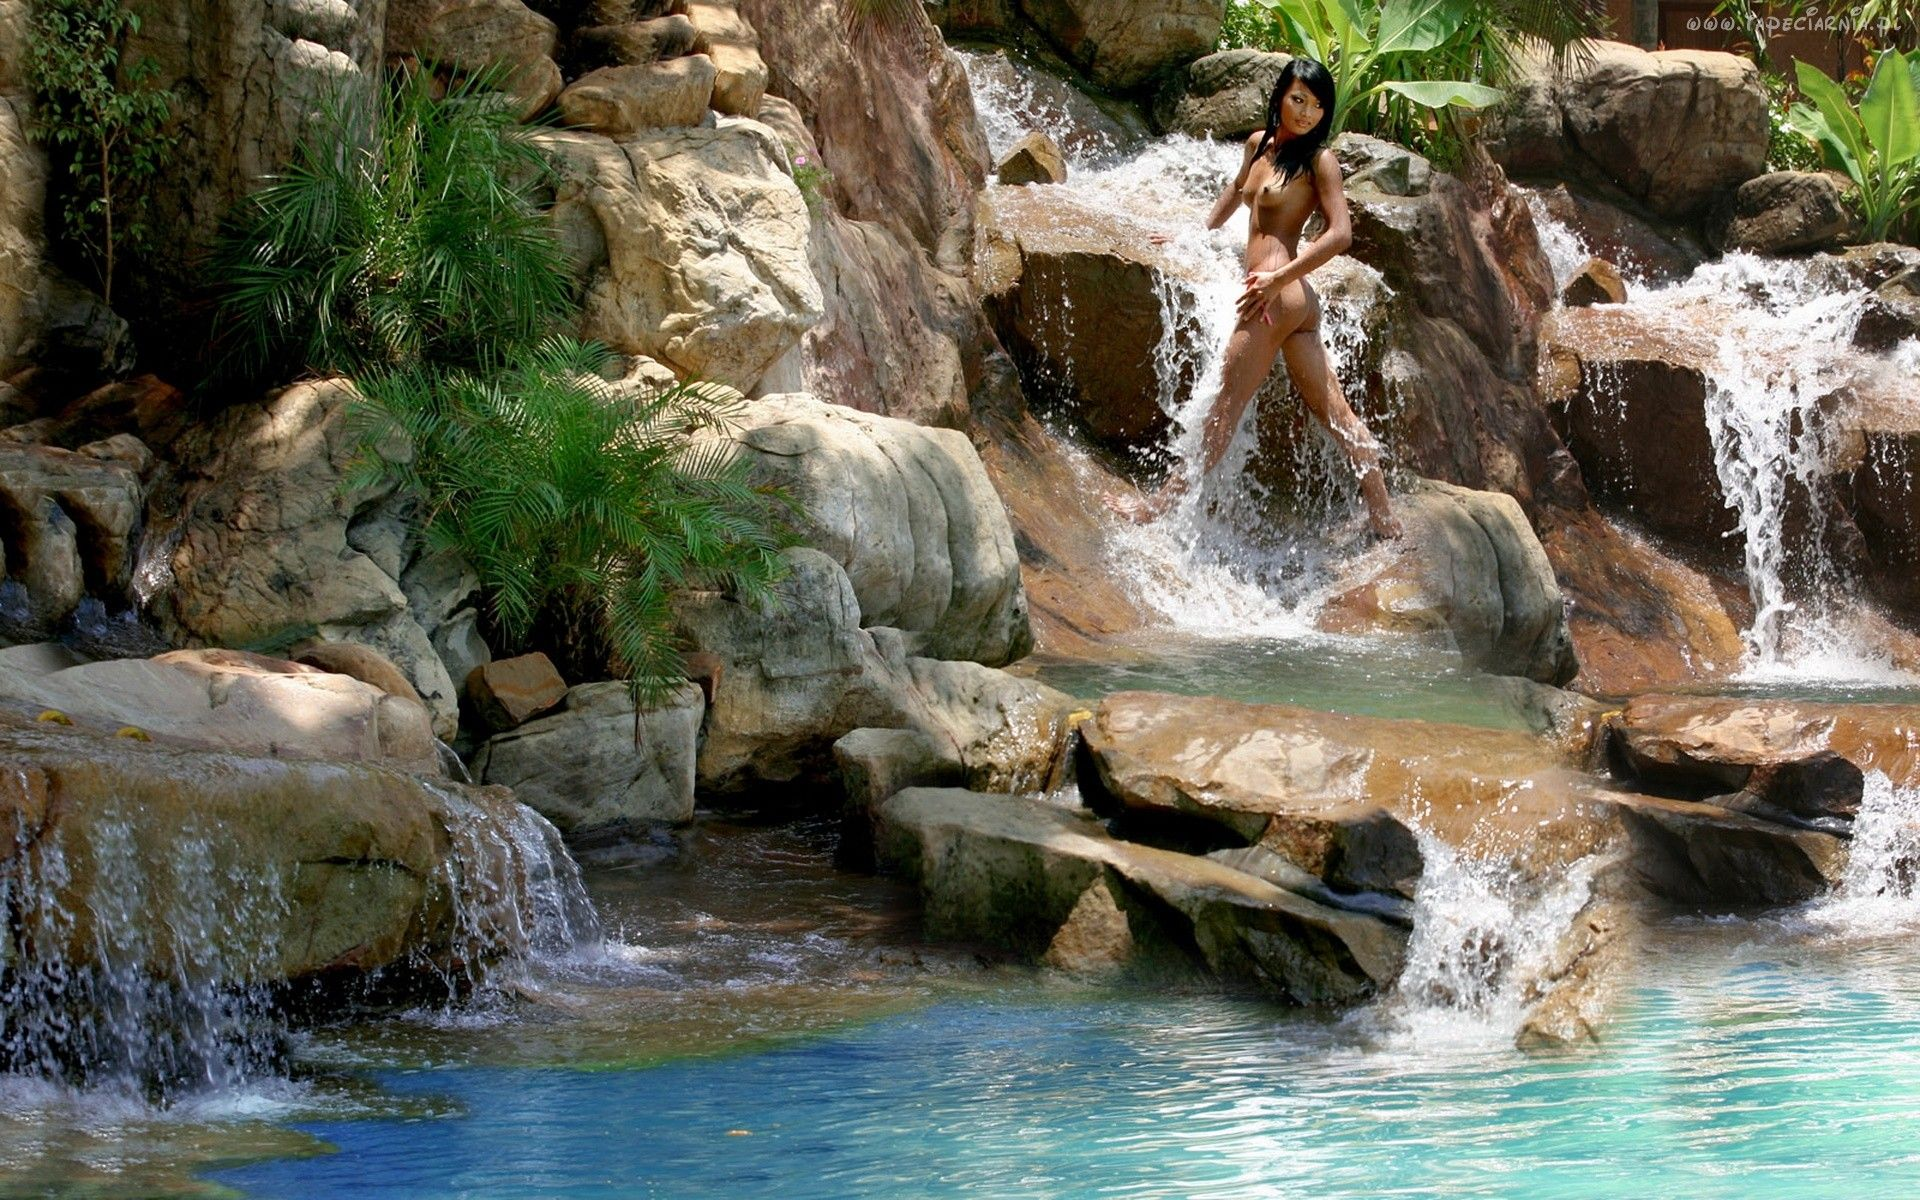 Know Hot nude in waterfalls consider